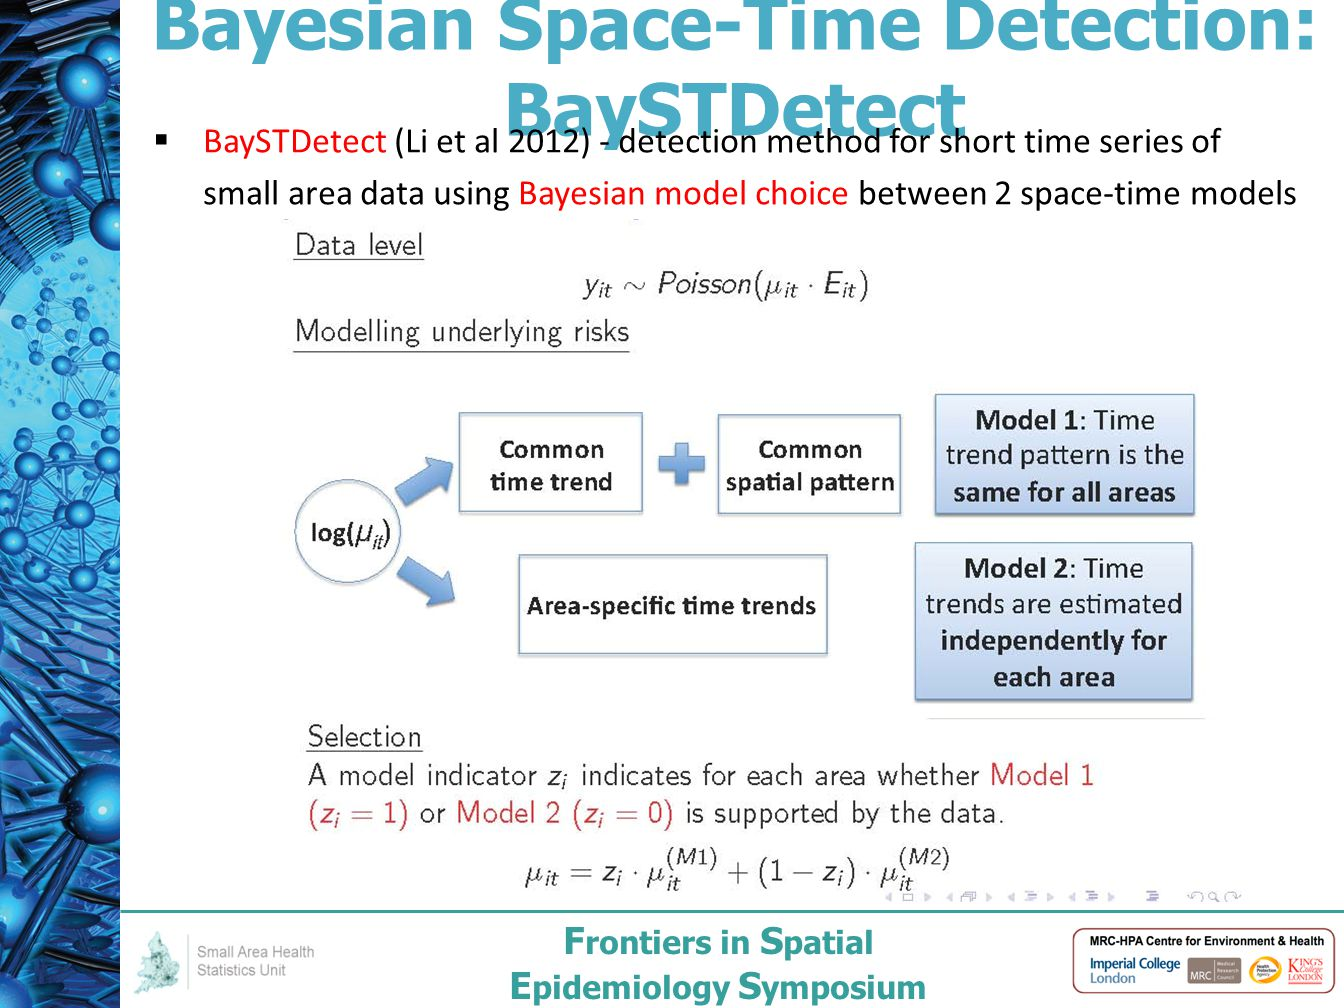 F rontiers in S patial E pidemiology S ymposium Bayesian Space-Time Detection: BaySTDetect  BaySTDetect (Li et al 2012) - detection method for short time series of small area data using Bayesian model choice between 2 space-time models